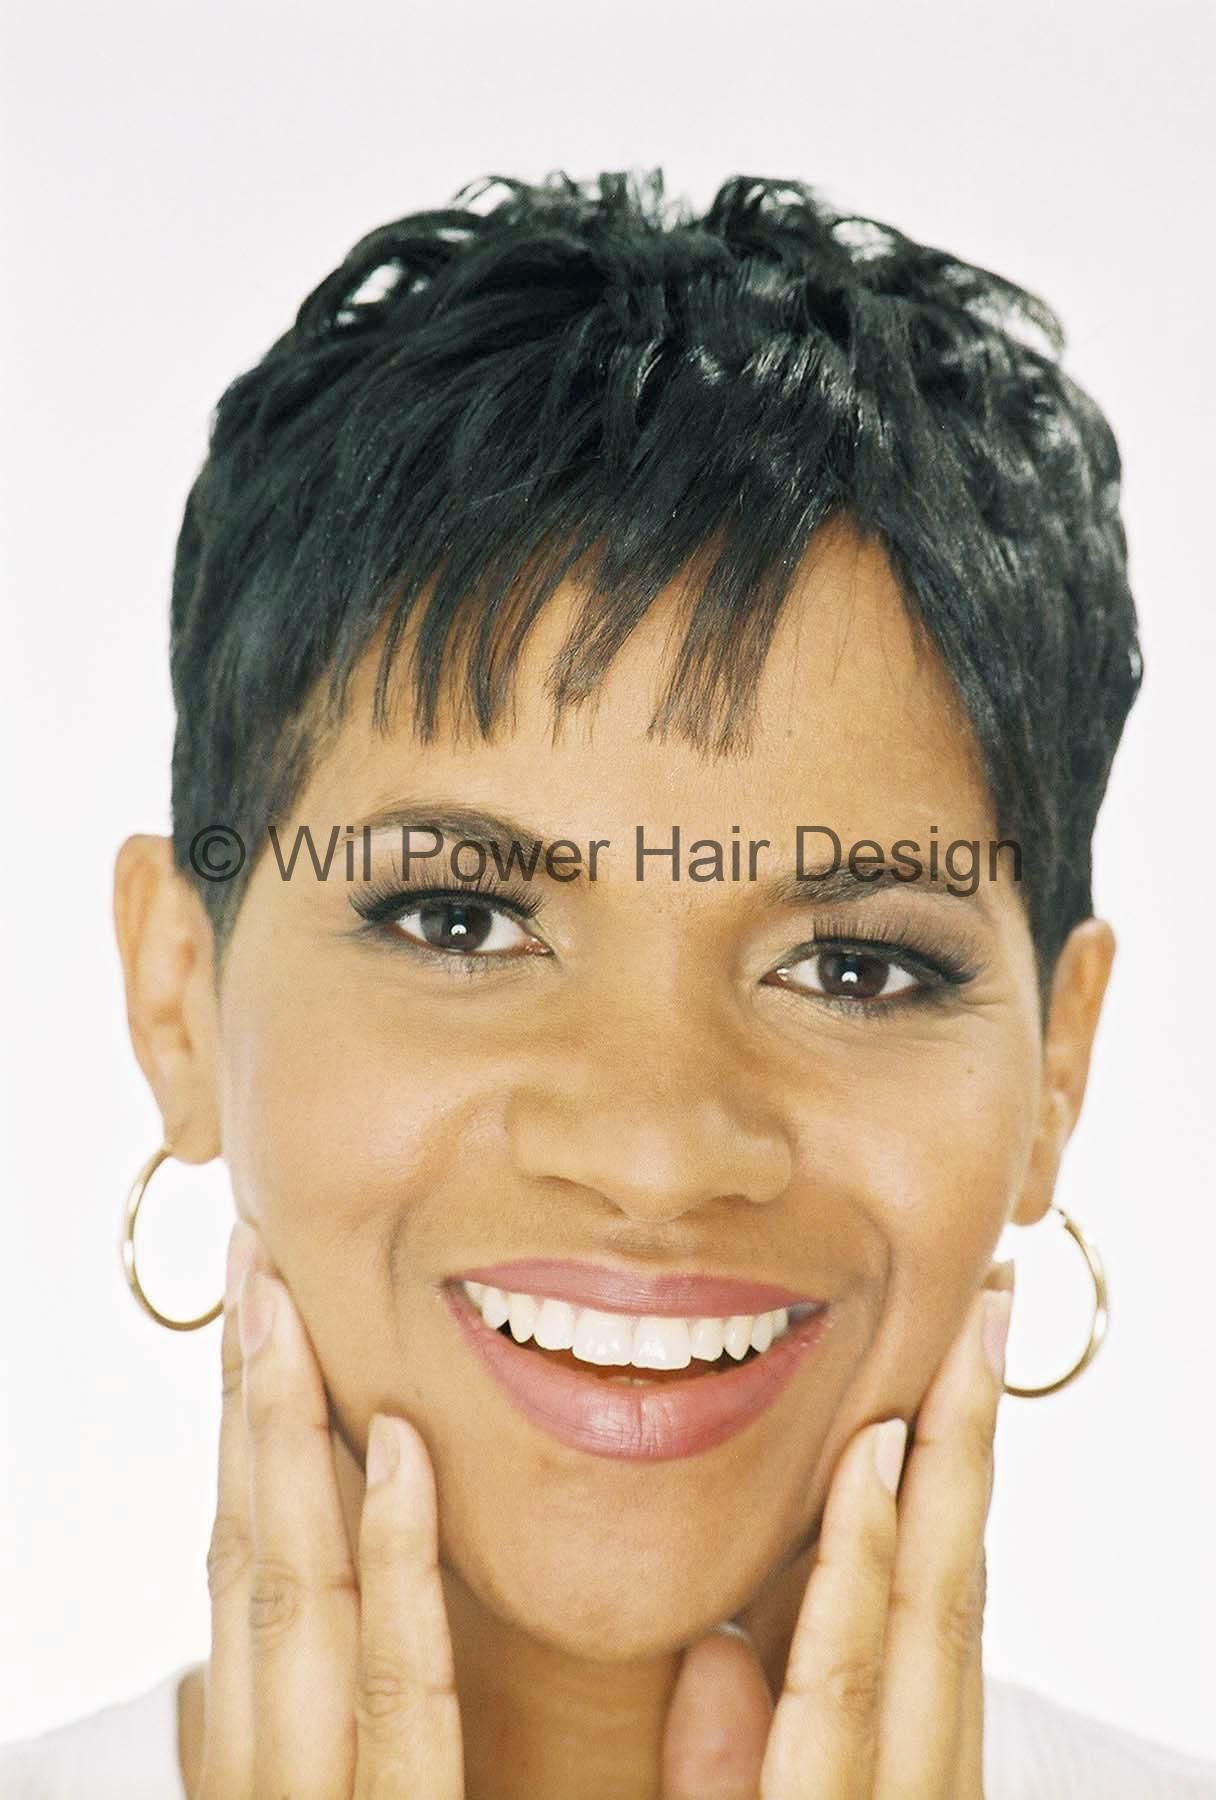 Relaxed hairstyles and black women picture of an attractive black